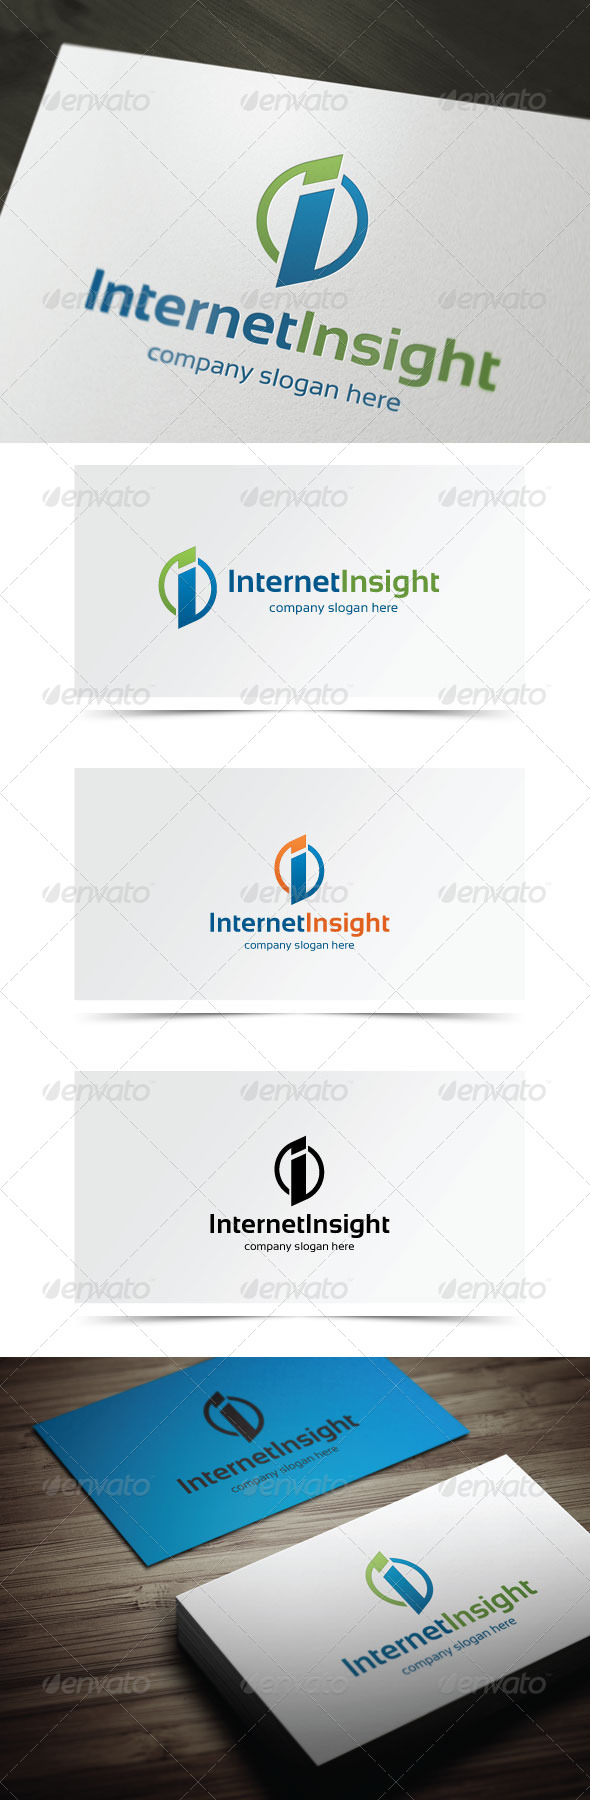 Internet Insight - Letters Logo Templates